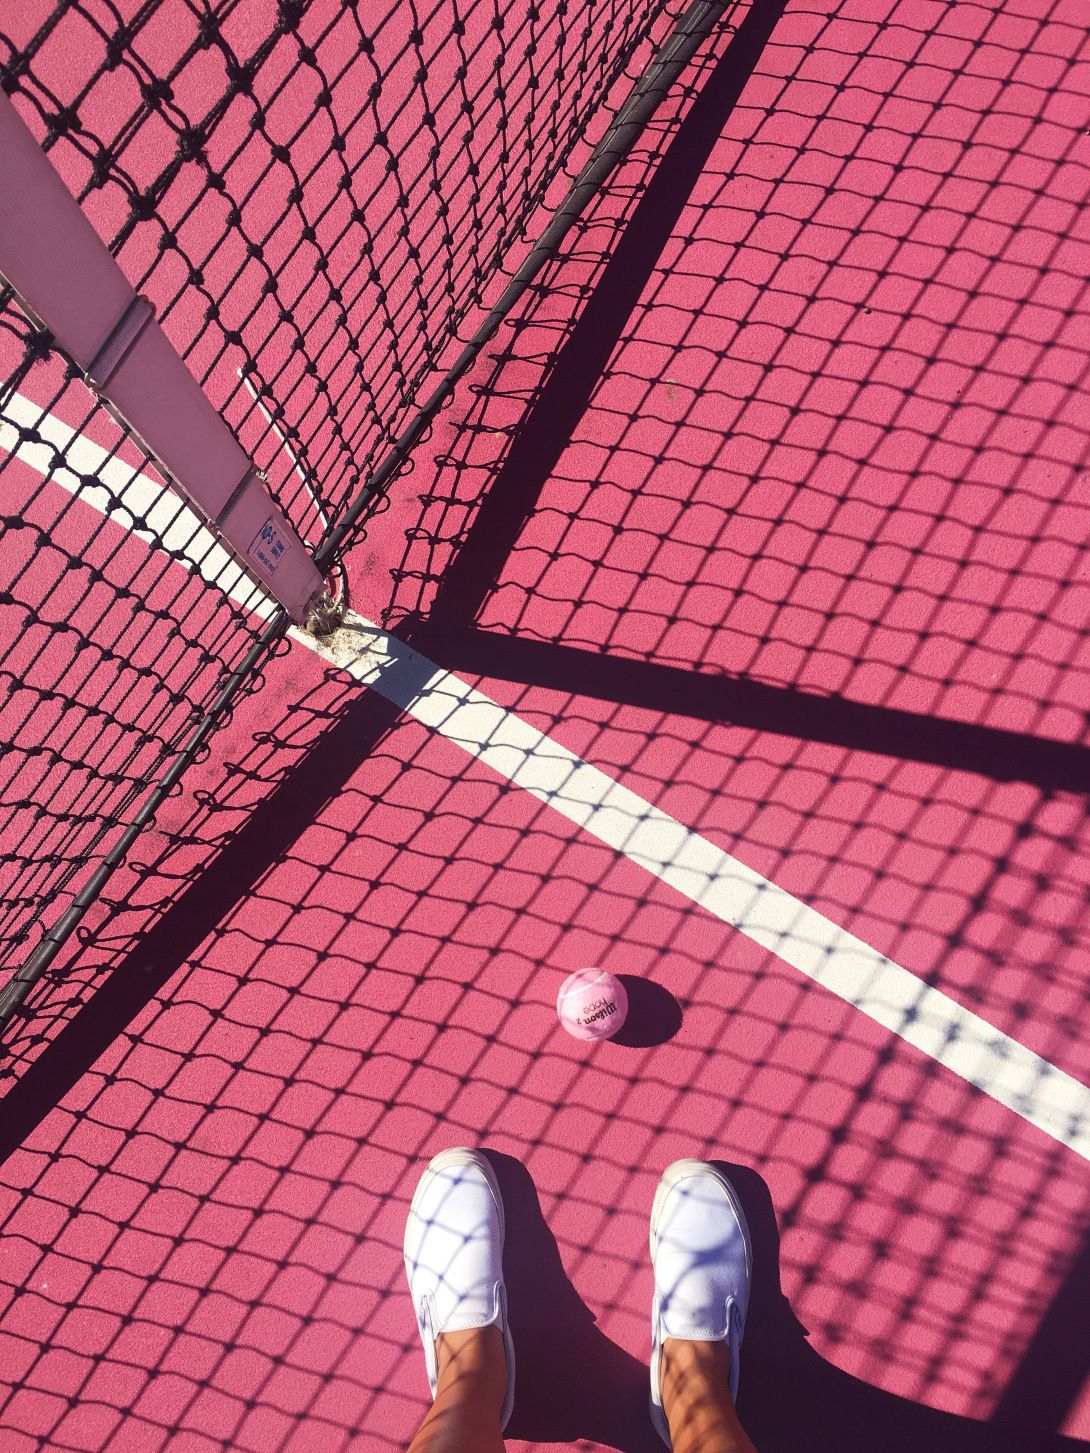 Madonna Inn S Pink Tennis Court Pink Aesthetic Tennis Pictures Pink Photo